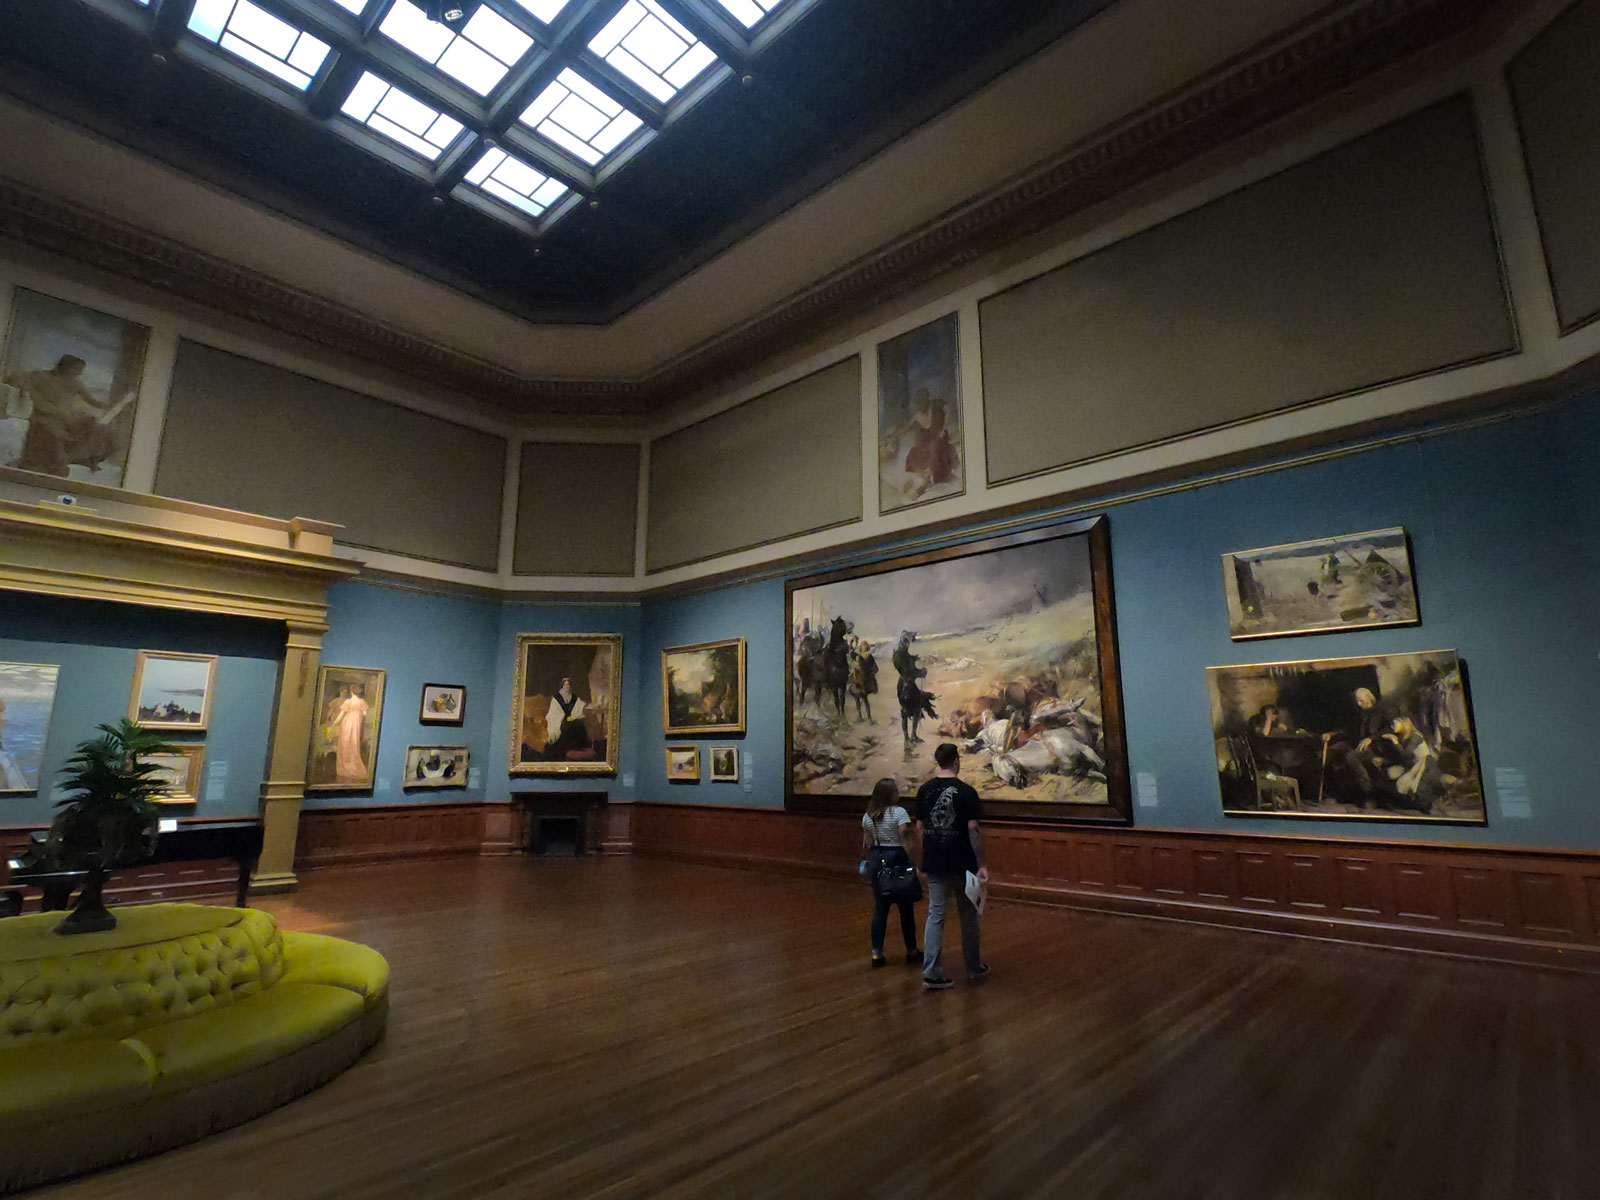 Interior of Telfair Academy art collection in Savannah, Georgia